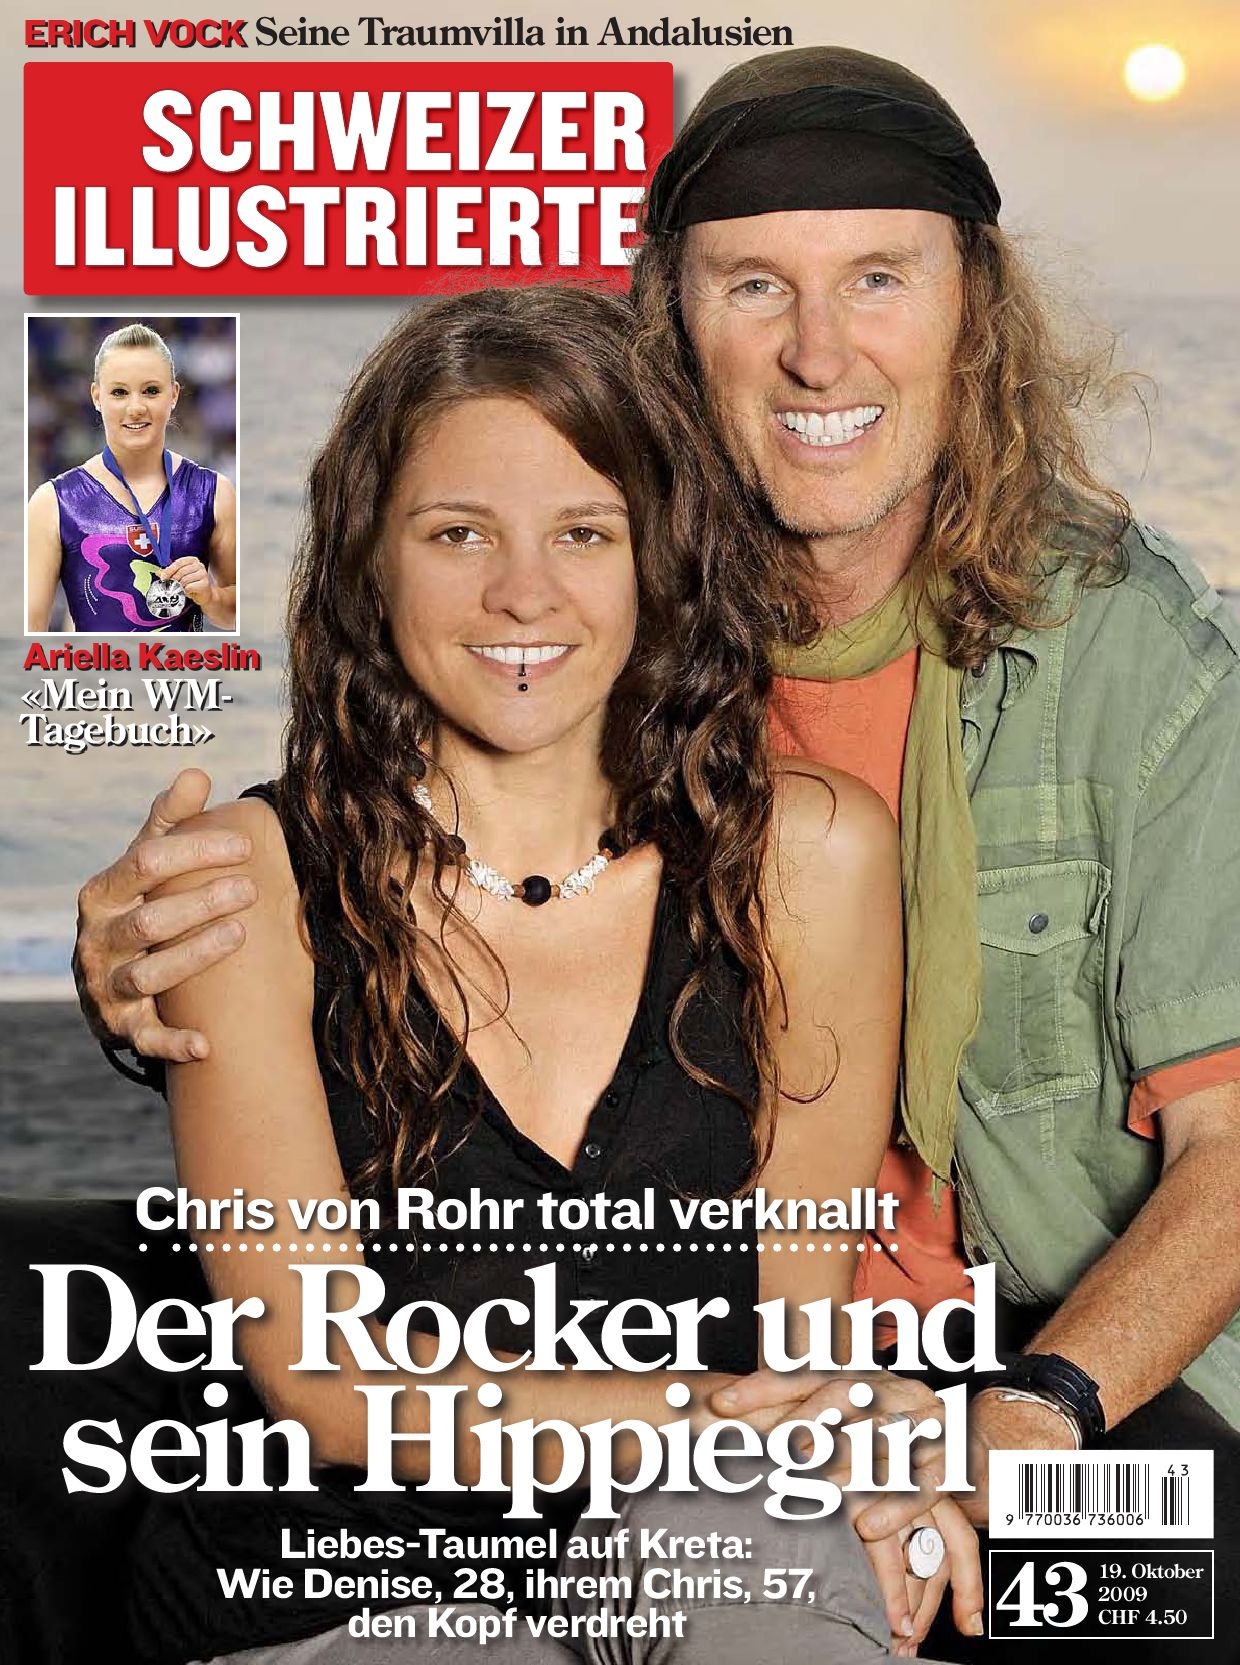 si200943 by schweizer illustrierte issuu